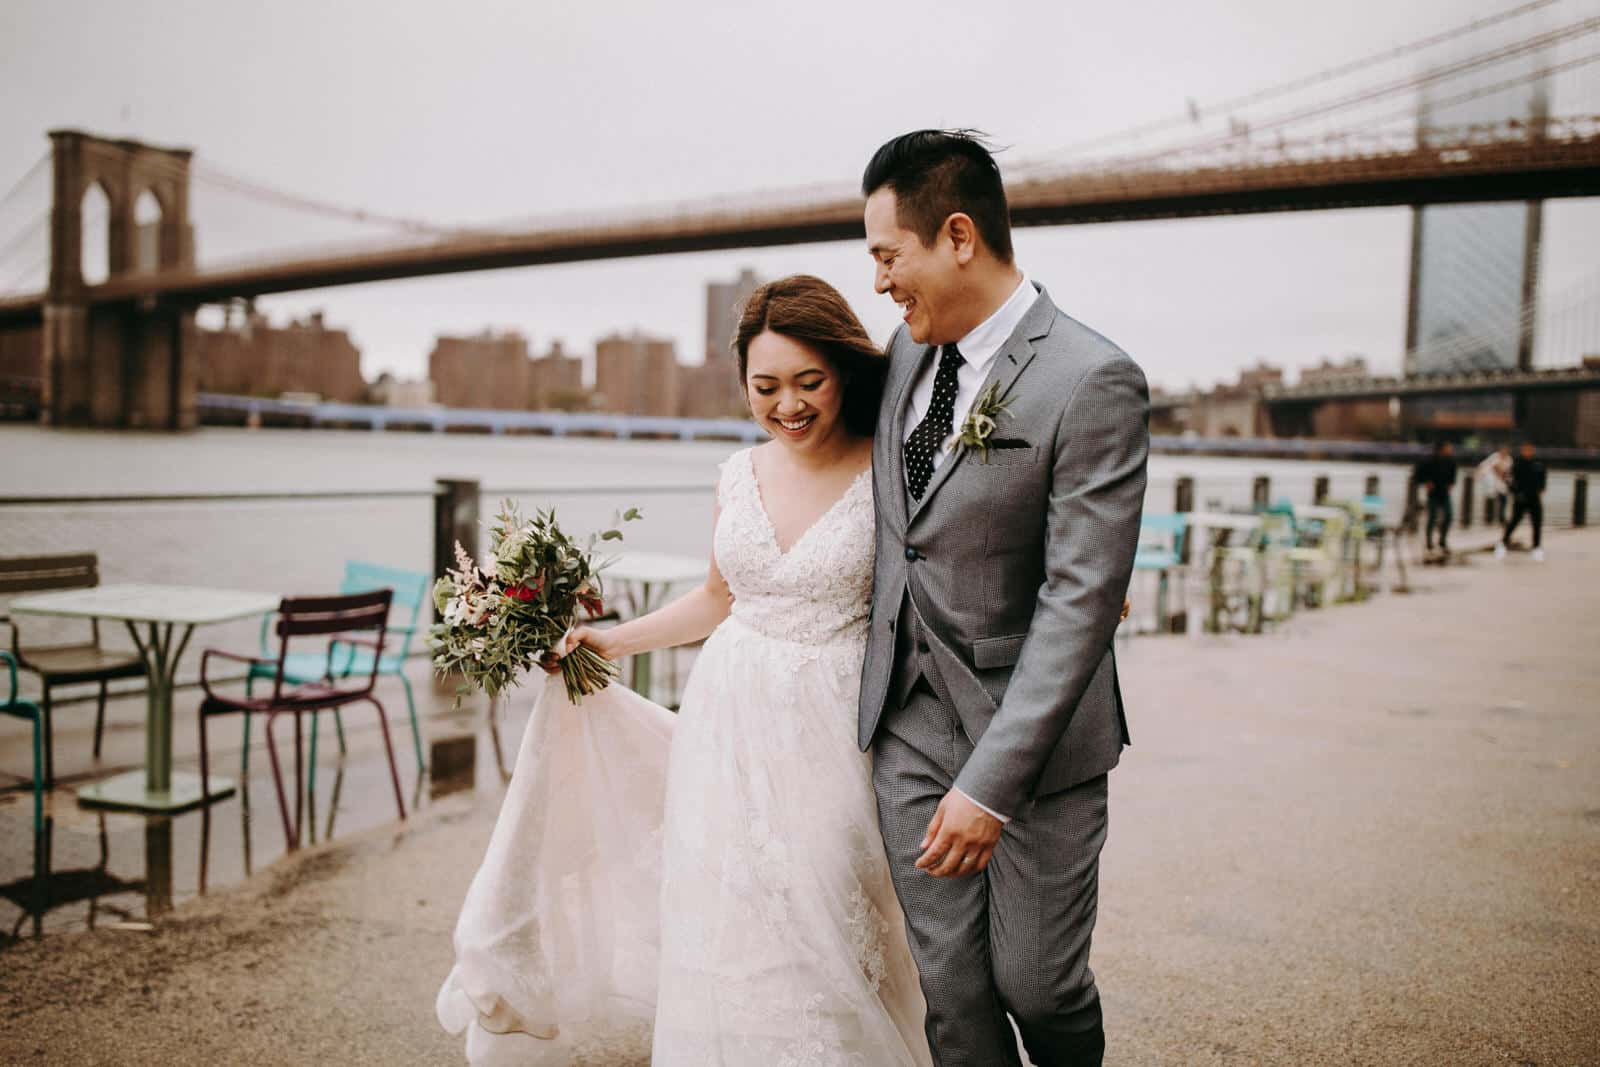 The wedding couple is walking along the esplanade right next to the Brooklyn Bridge.